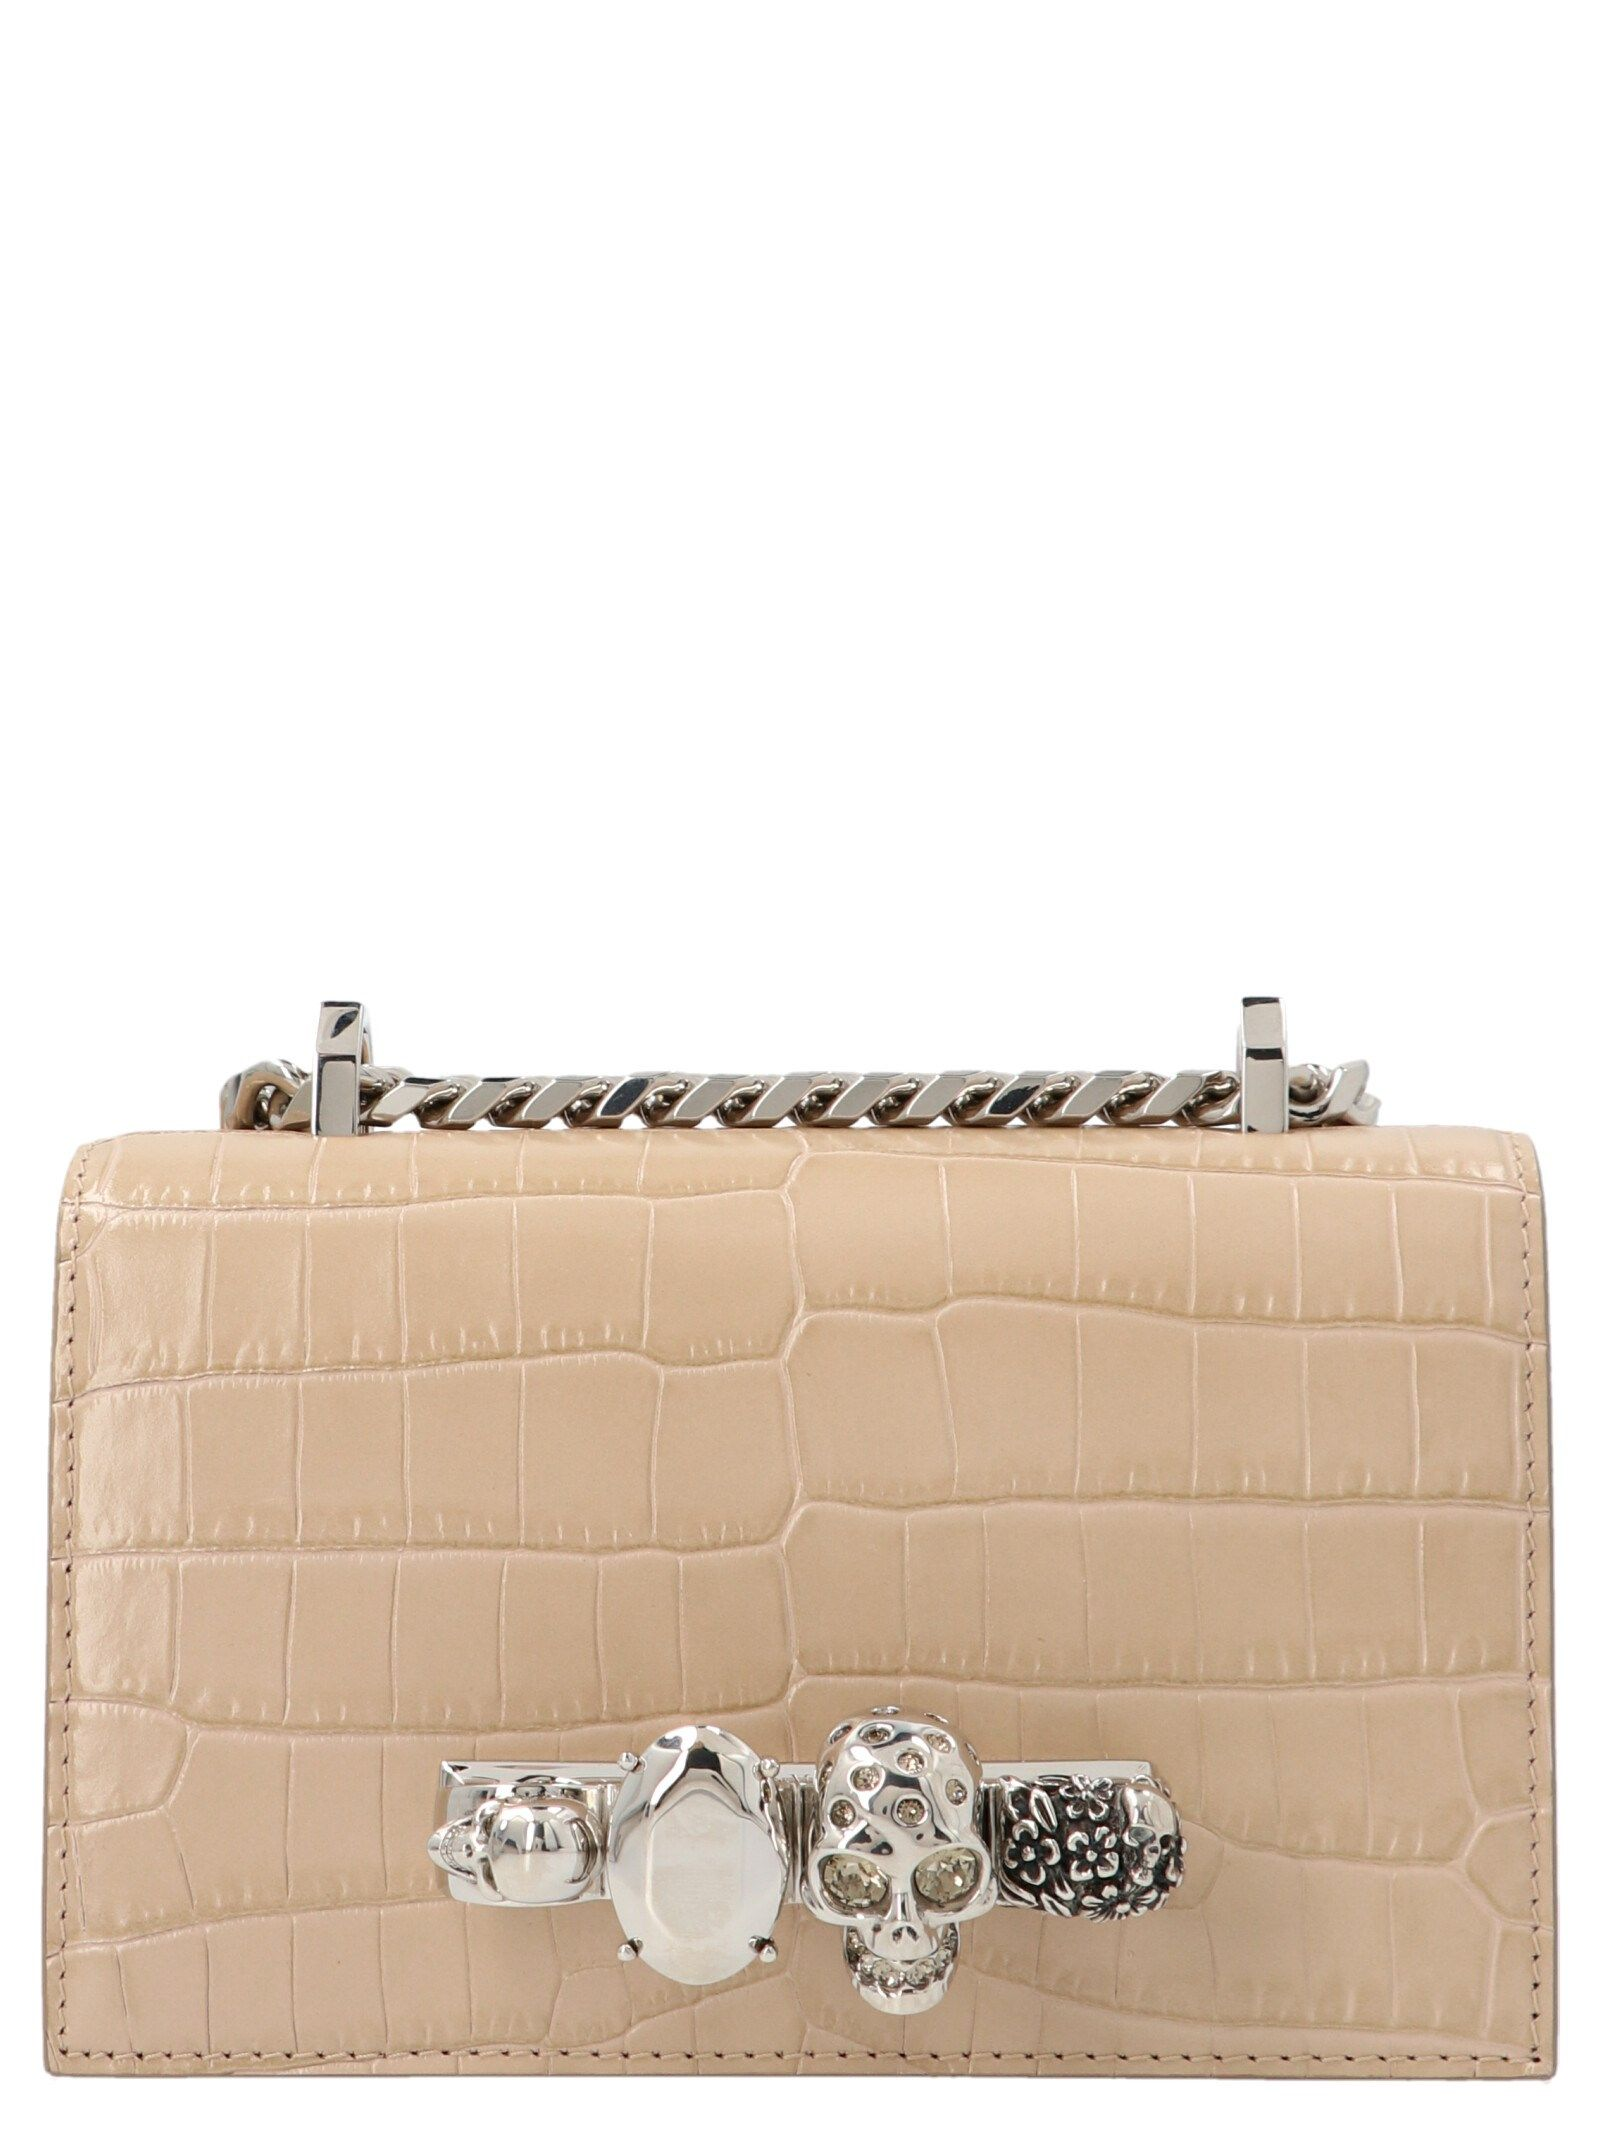 Alexander Mcqueen ALEXANDER MCQUEEN WOMEN'S 6531341HB012611 BEIGE OTHER MATERIALS SHOULDER BAG